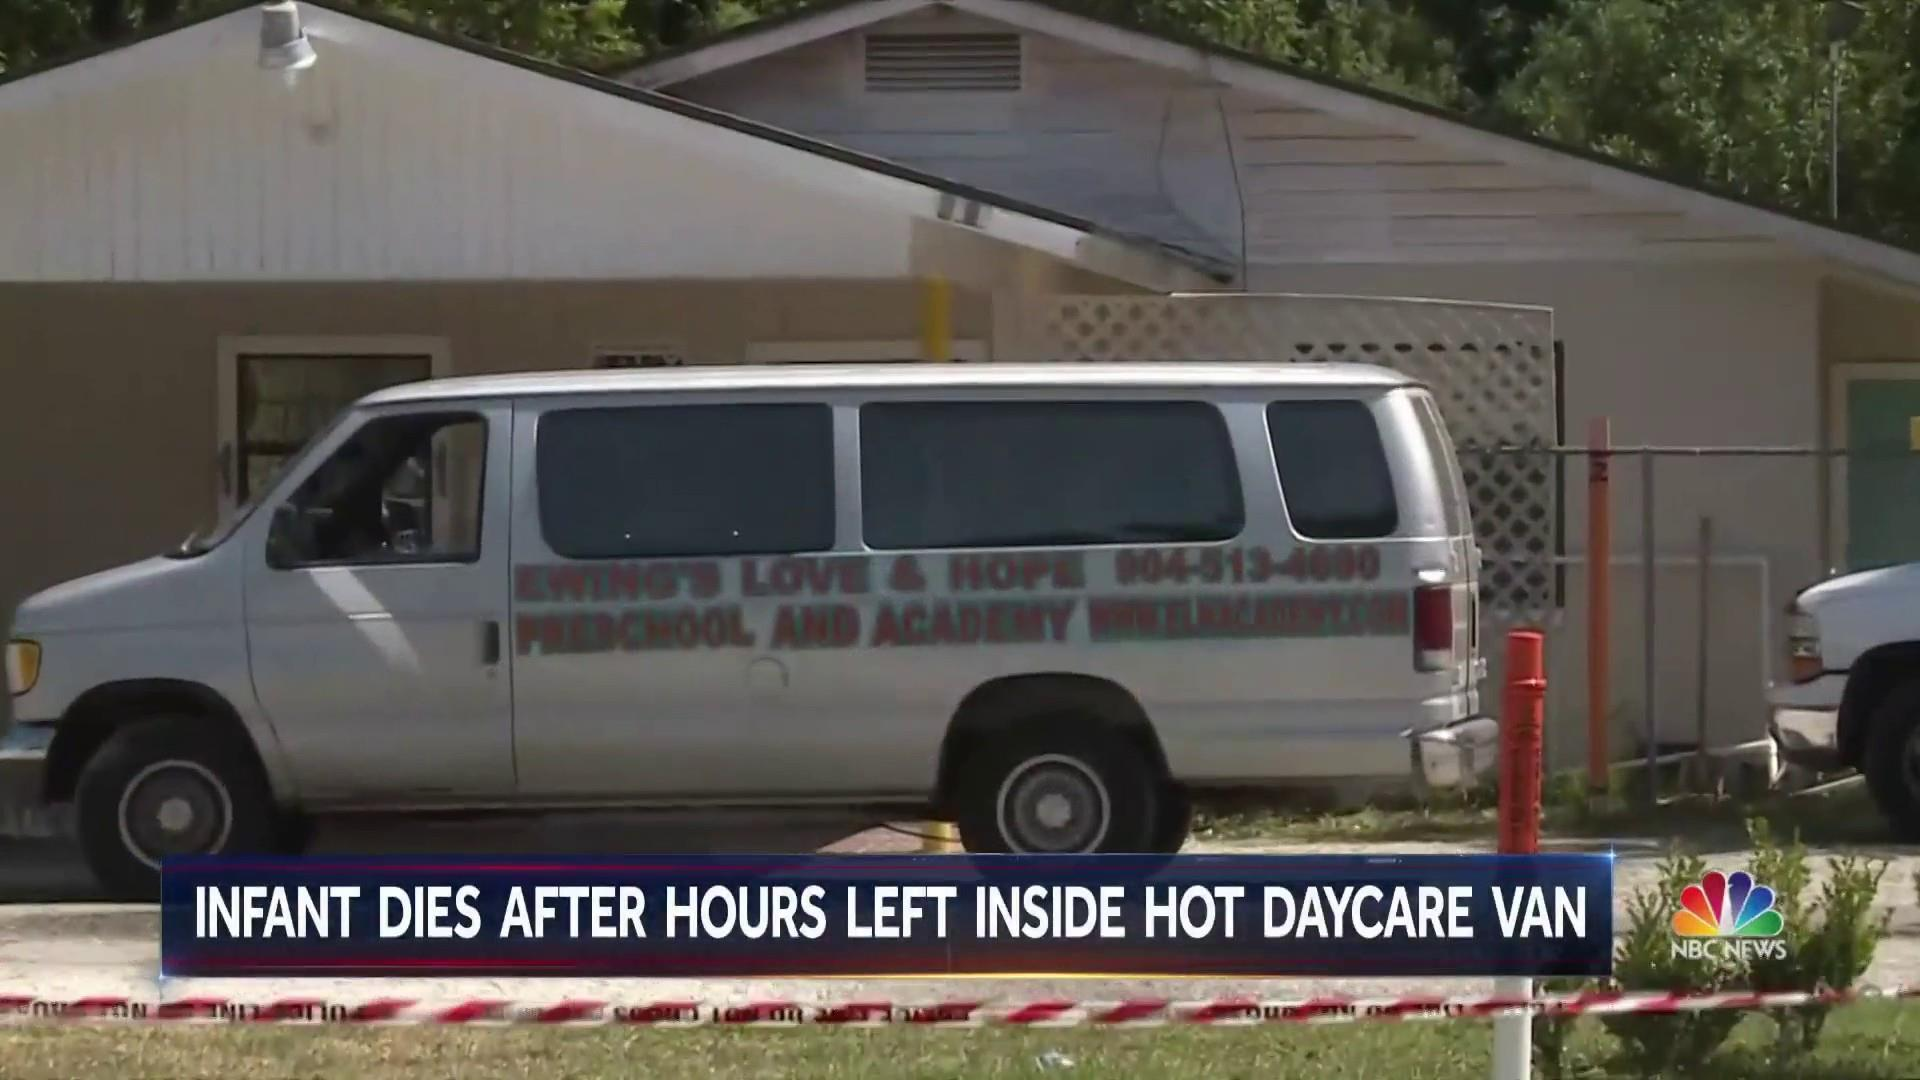 Director of day care arrested after baby left in van for 5 hours dies